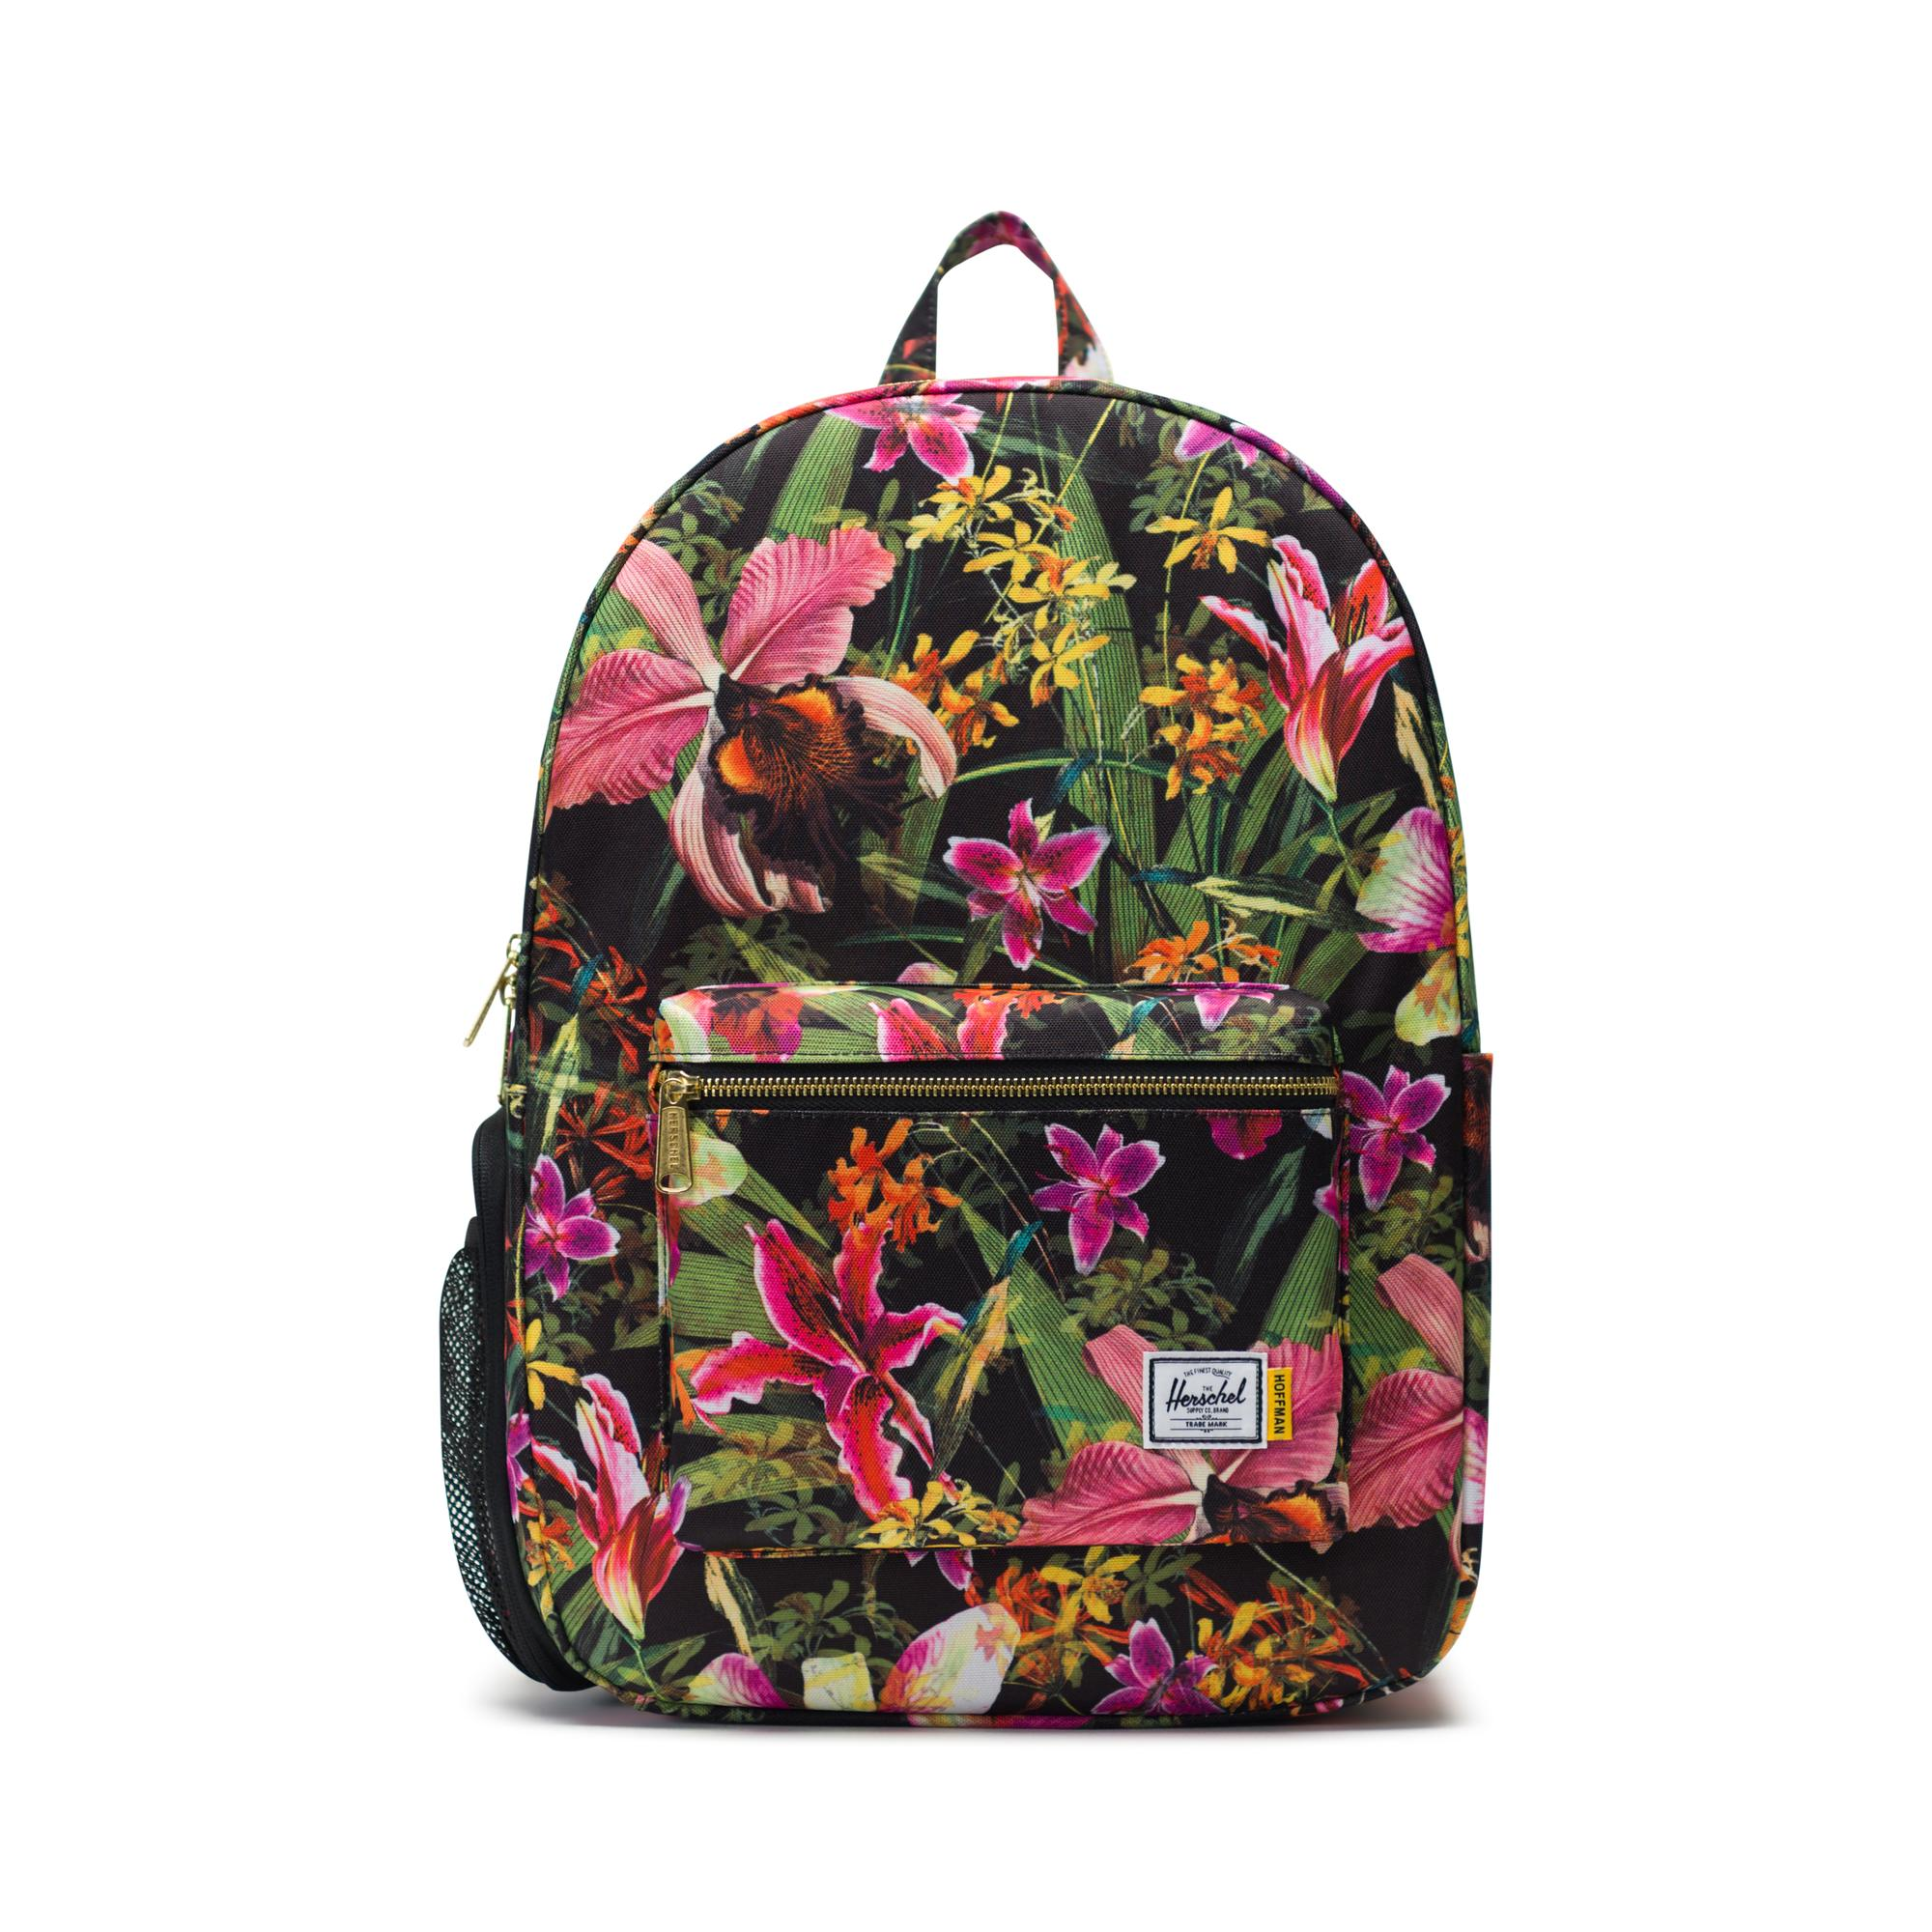 Settlement Backpack Sprout  1cdbfcdf4405d